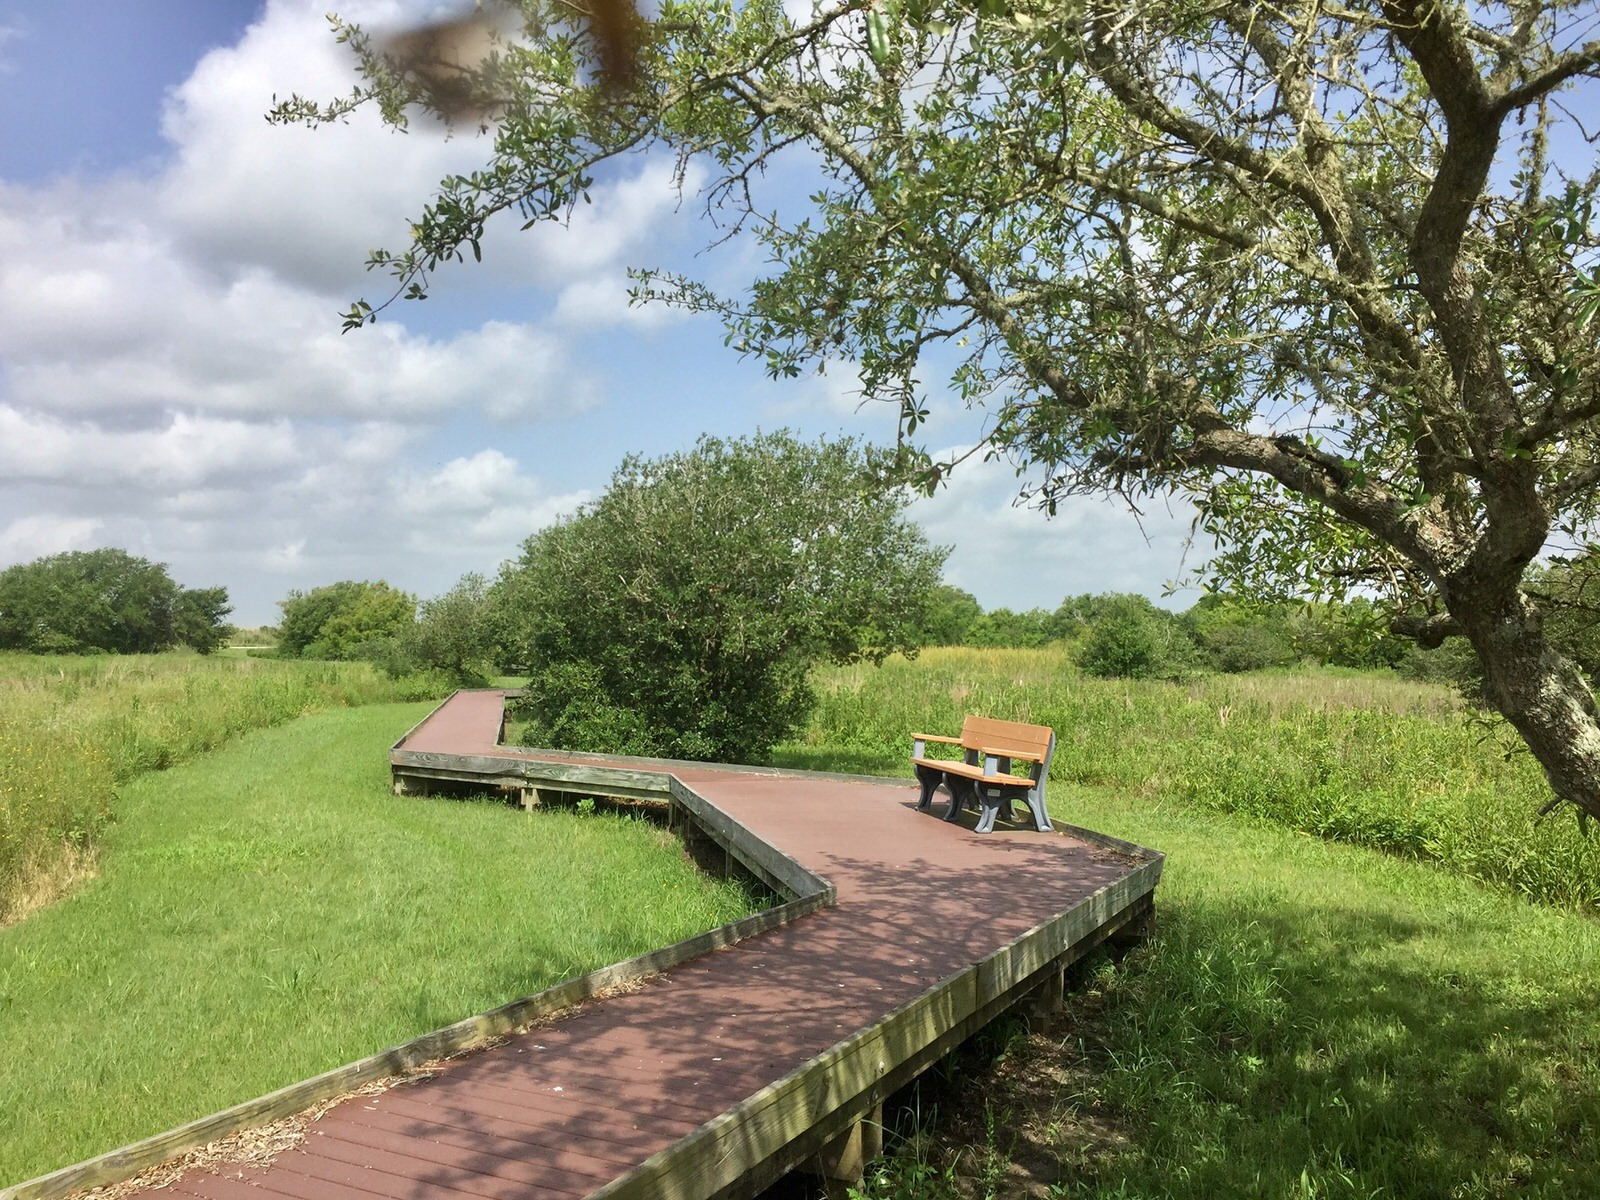 photo: Viewing bench. Photo by Anahuac NWR.